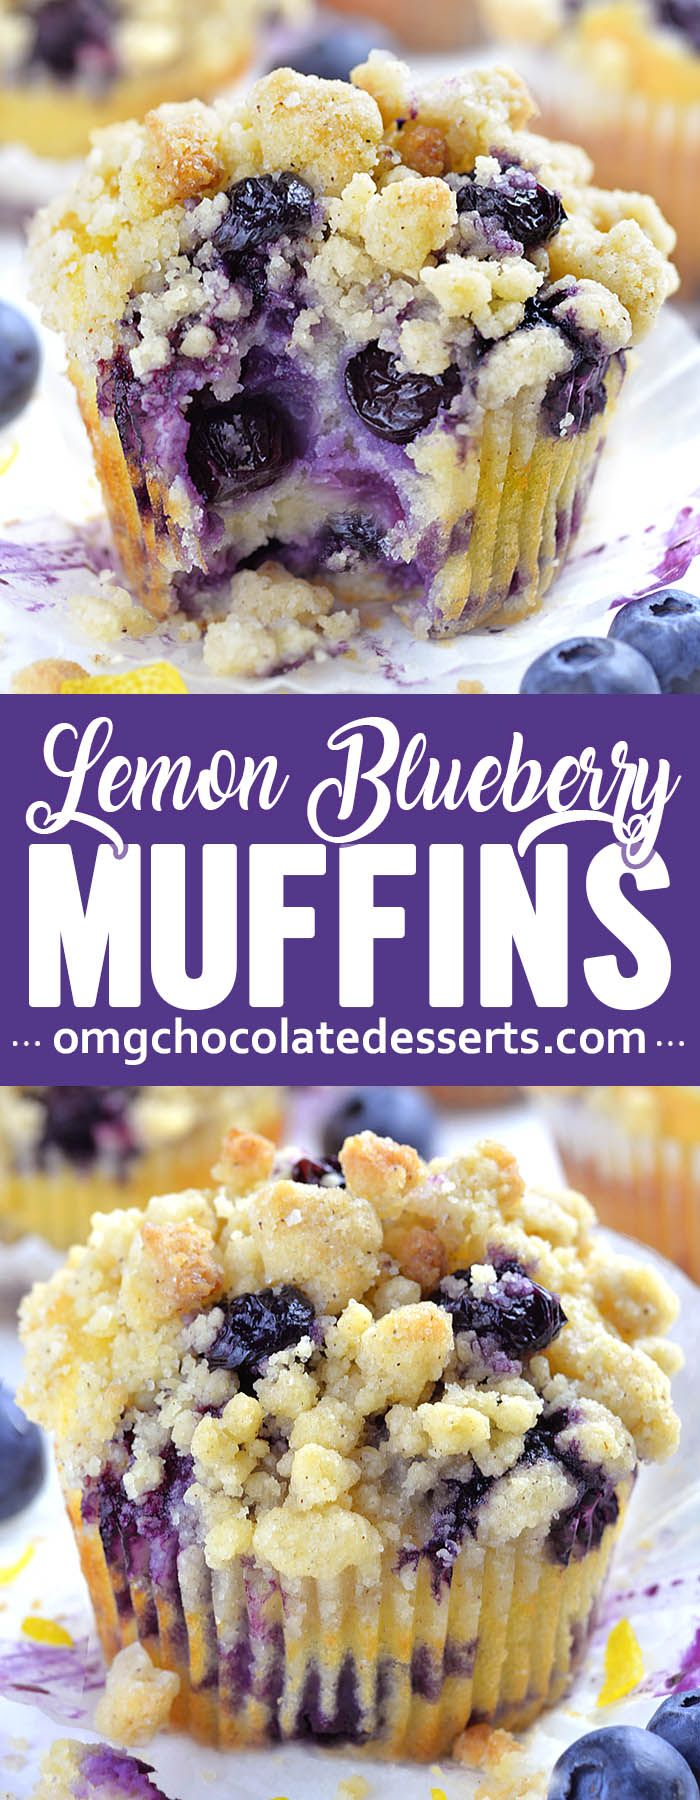 Lemon Blueberry Muffin with Streusel Crumb Topping